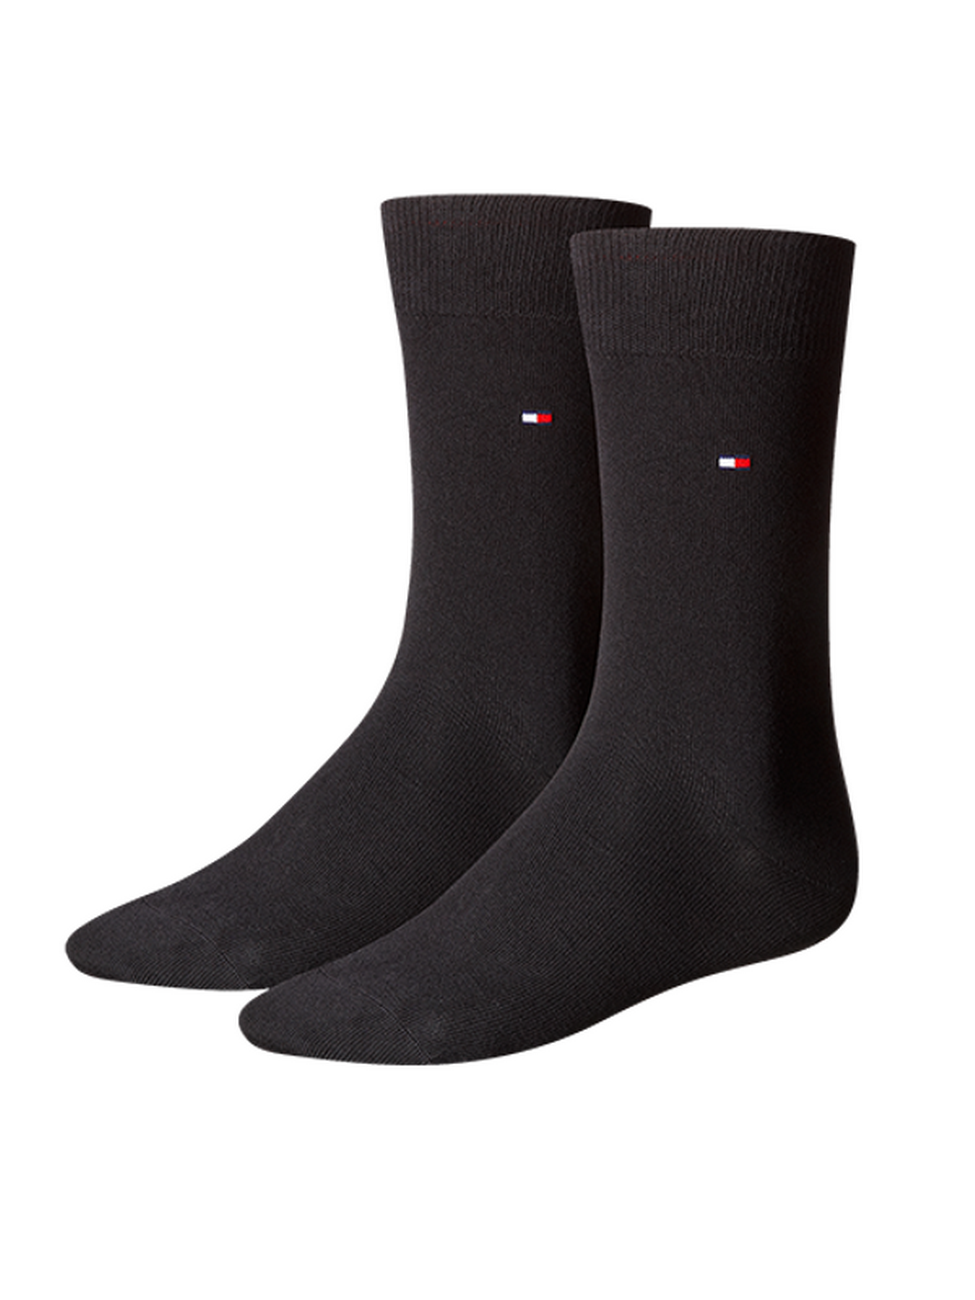 Tommy Hilfiger Herrensocken Classic Business Socken - 2er Pack 43-46, black (200)